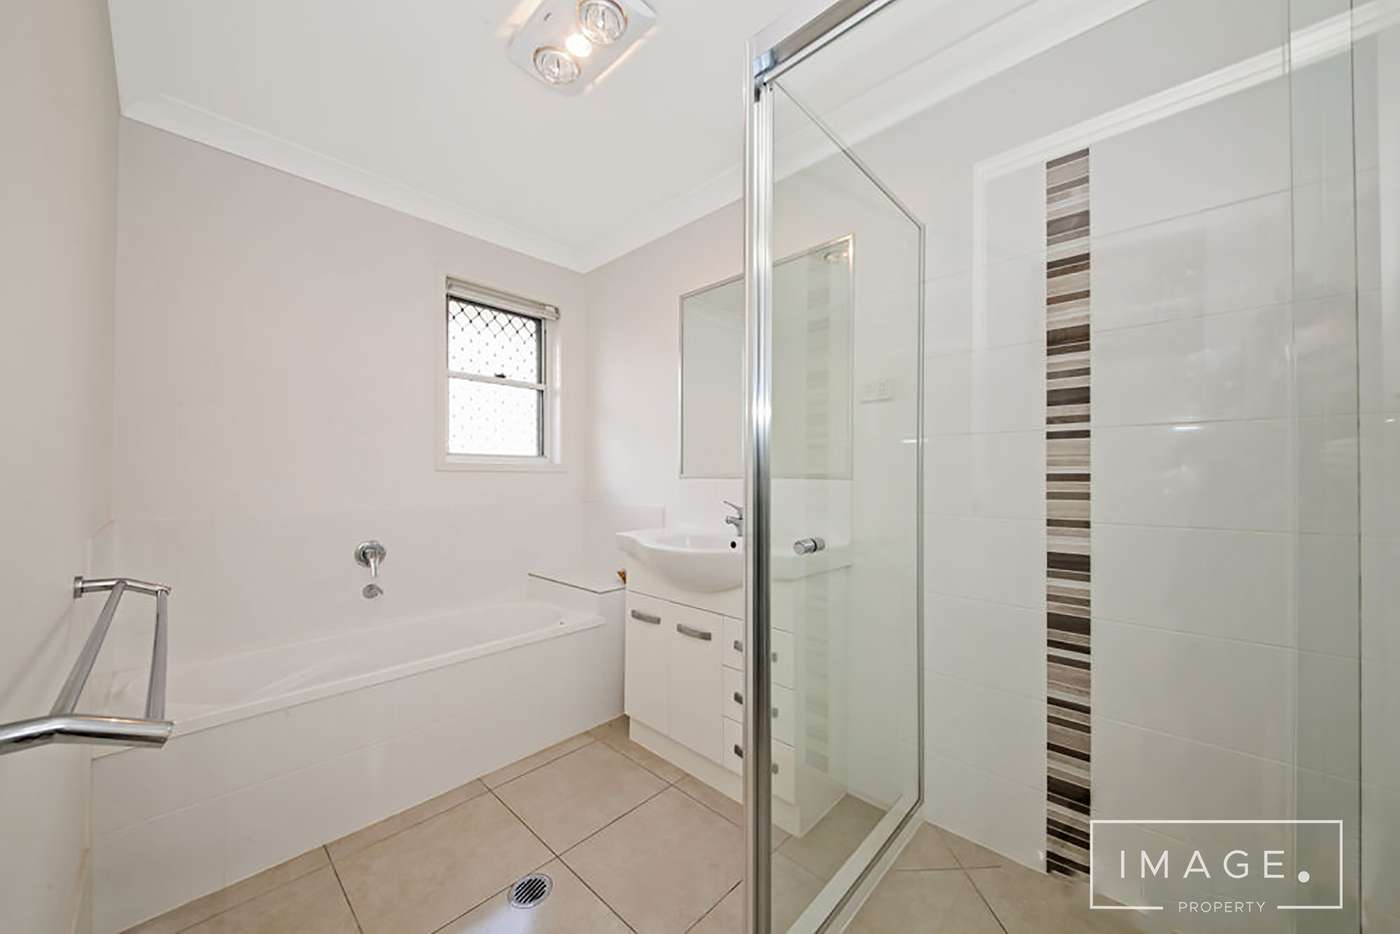 Seventh view of Homely house listing, 9 MELDRUM STREET, Kallangur QLD 4503